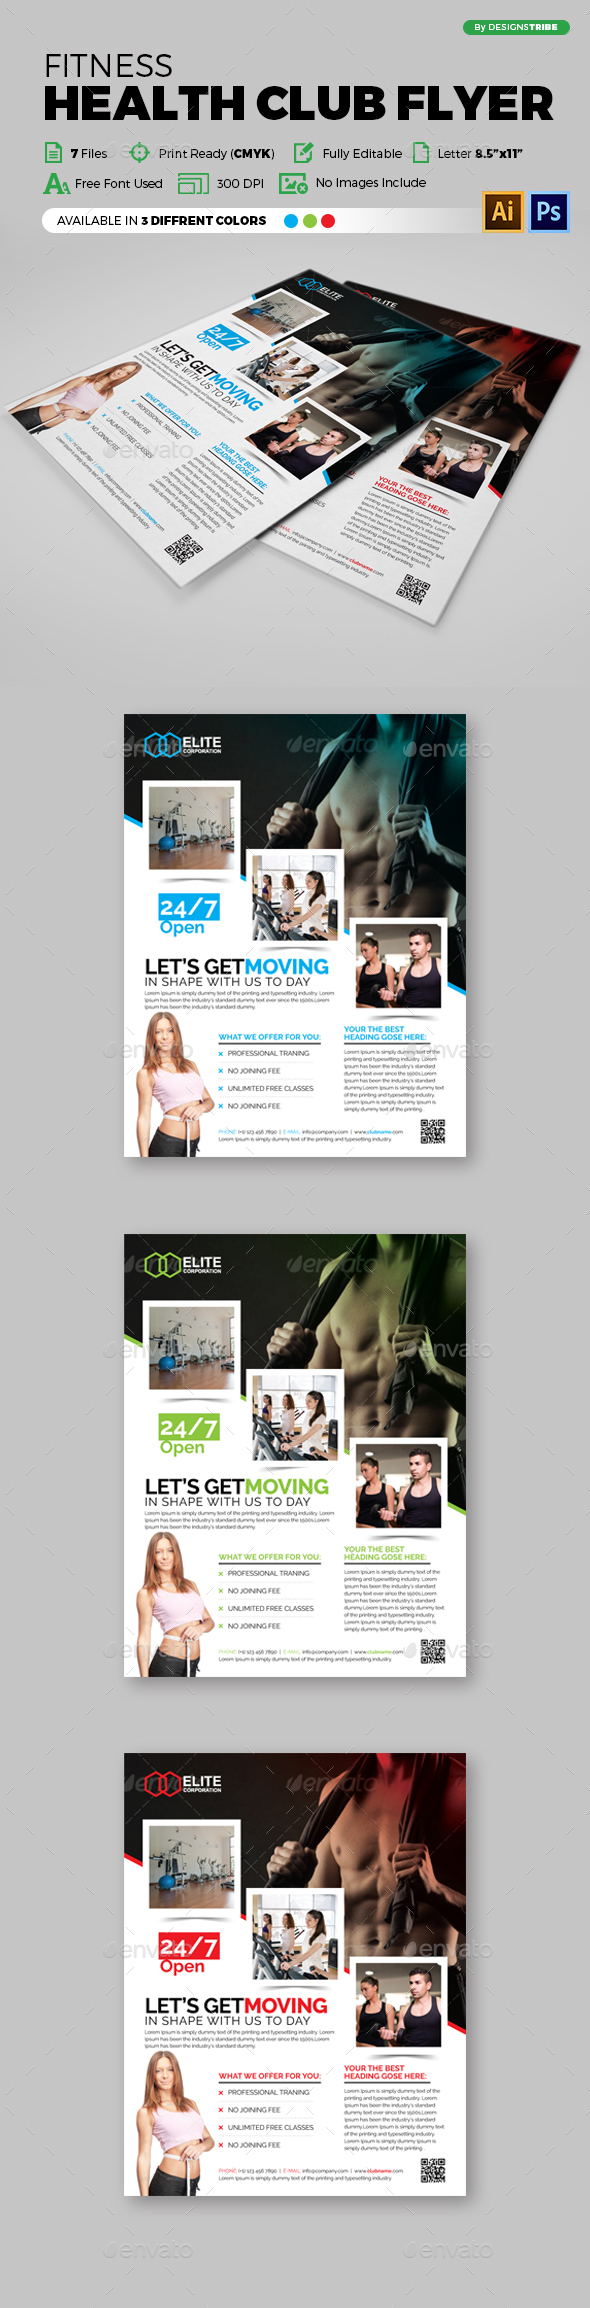 Fitness Health Club Flyer 92 - Flyers Print Templates